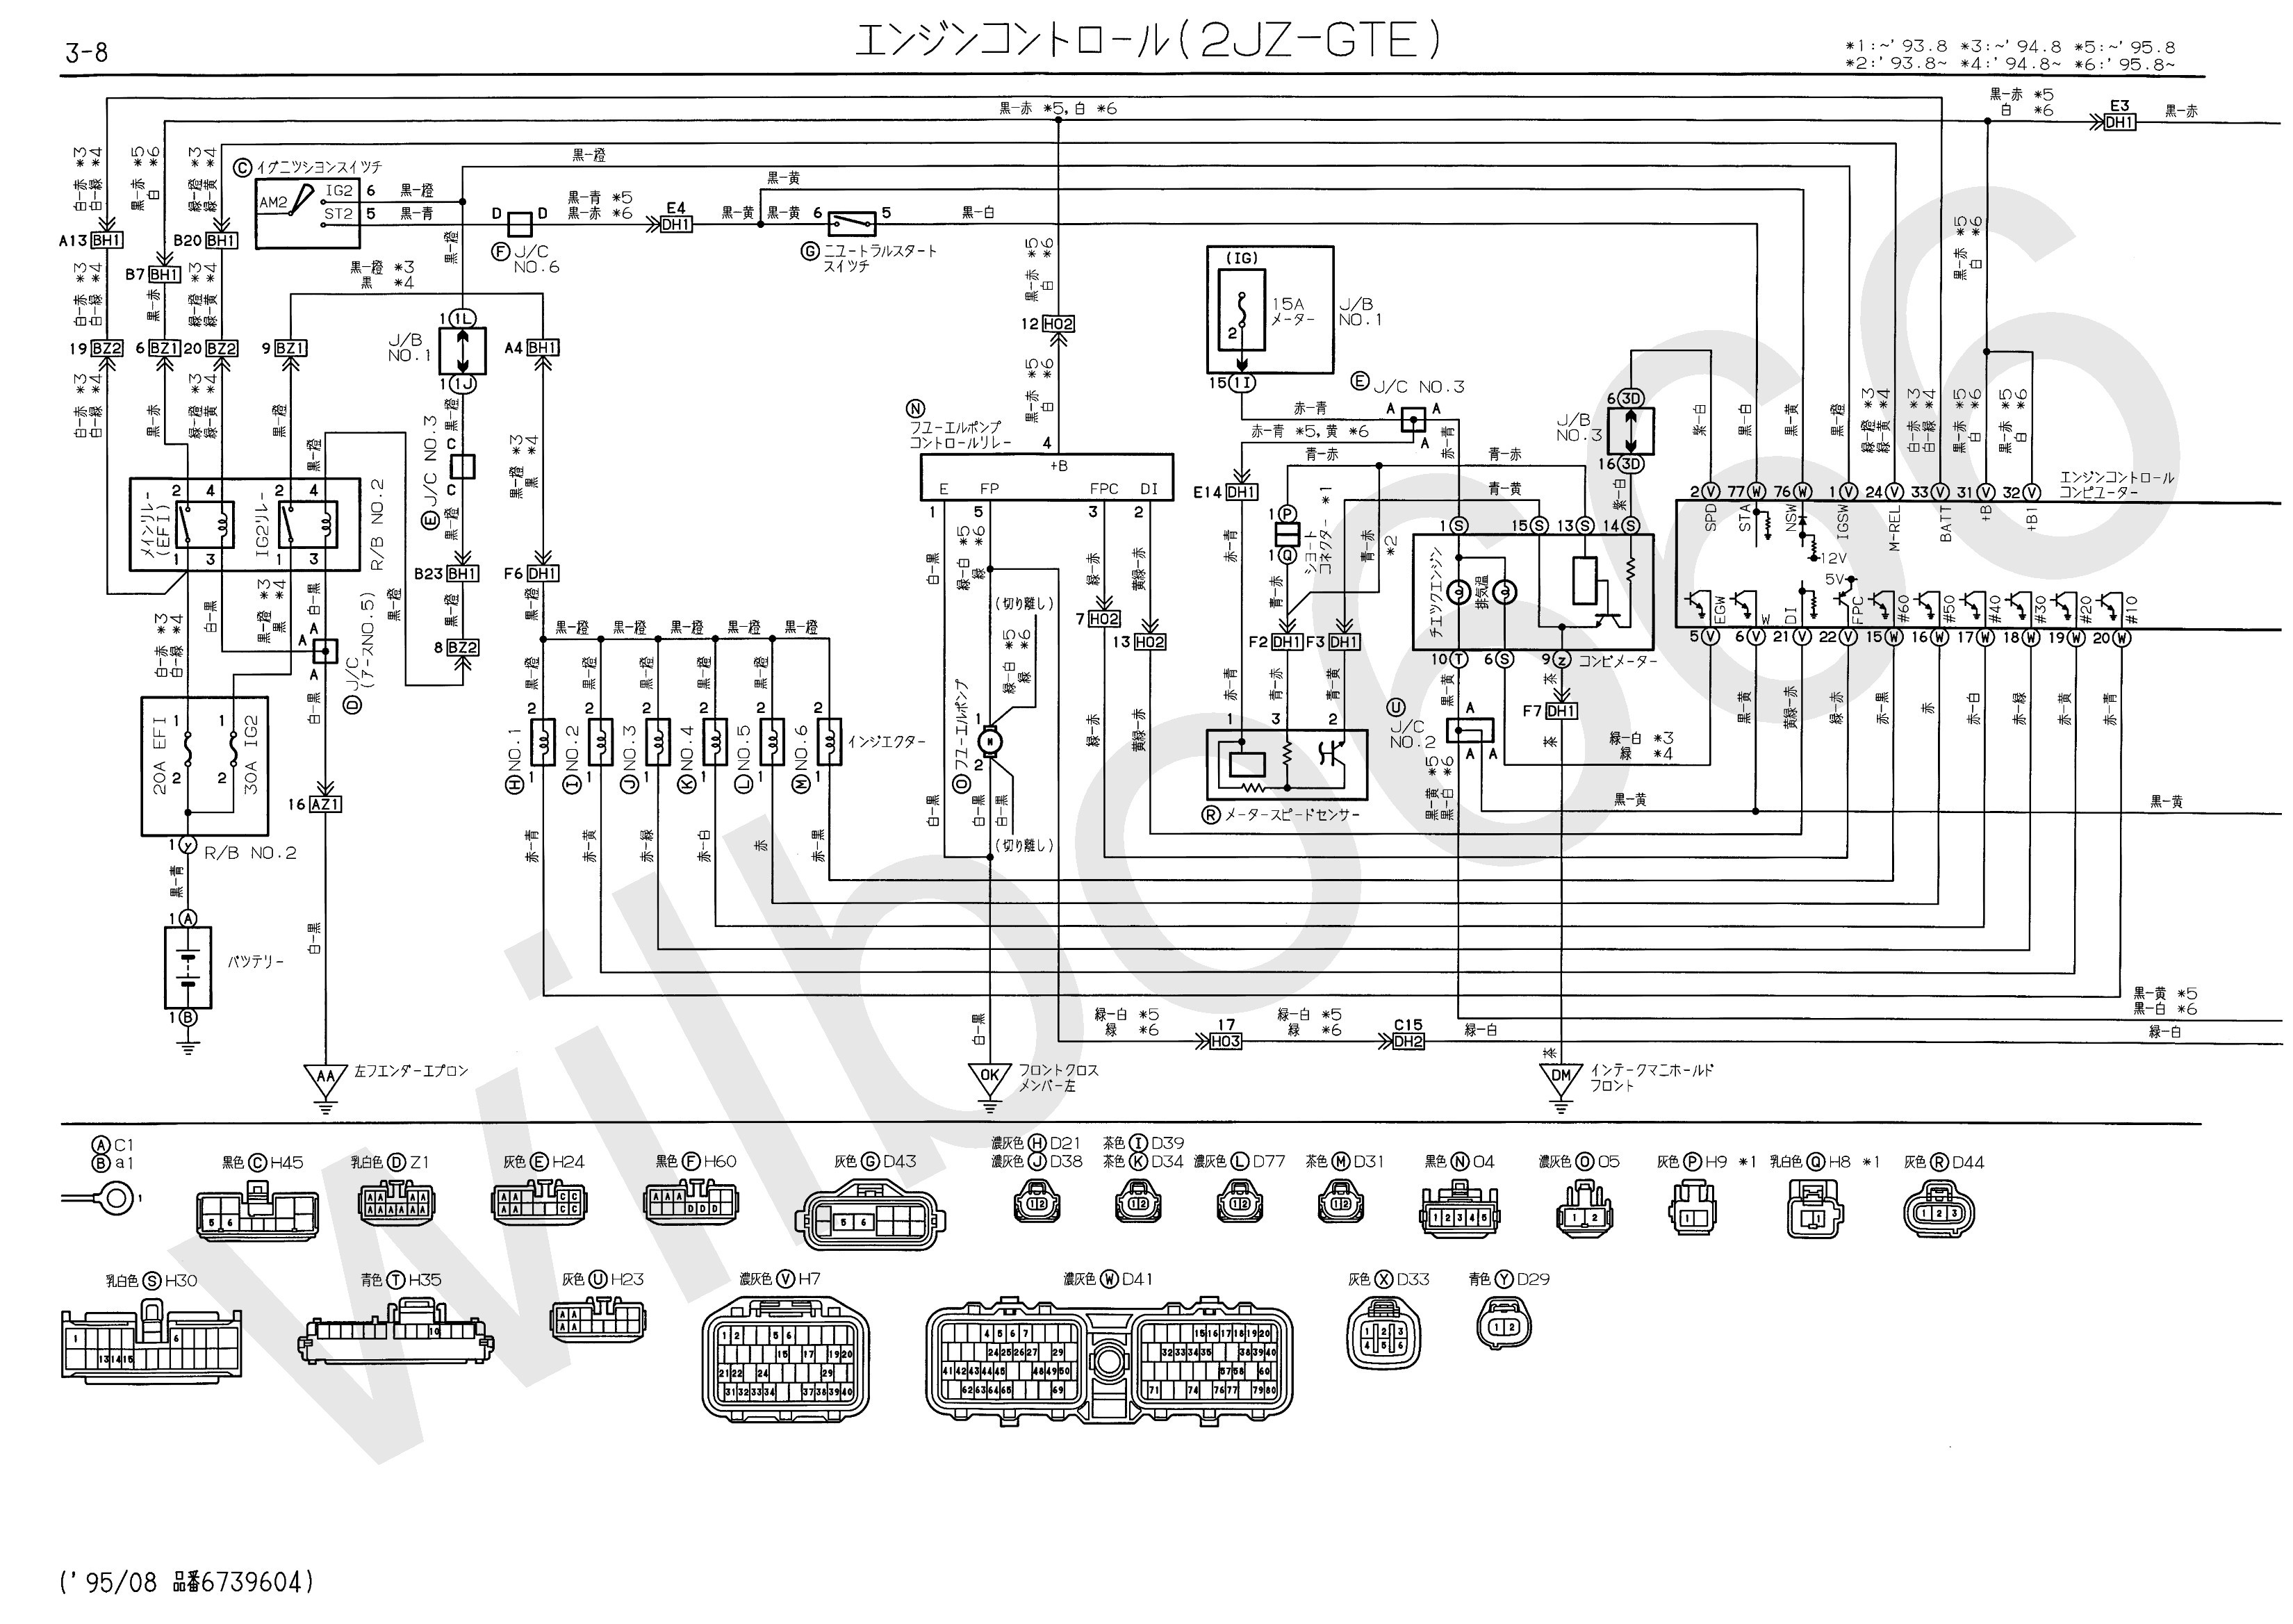 Coolant Temperature Sensor Wiring Diagram Unique Wilbo666 2jz Gte Jzs147 Aristo Engine Wiring